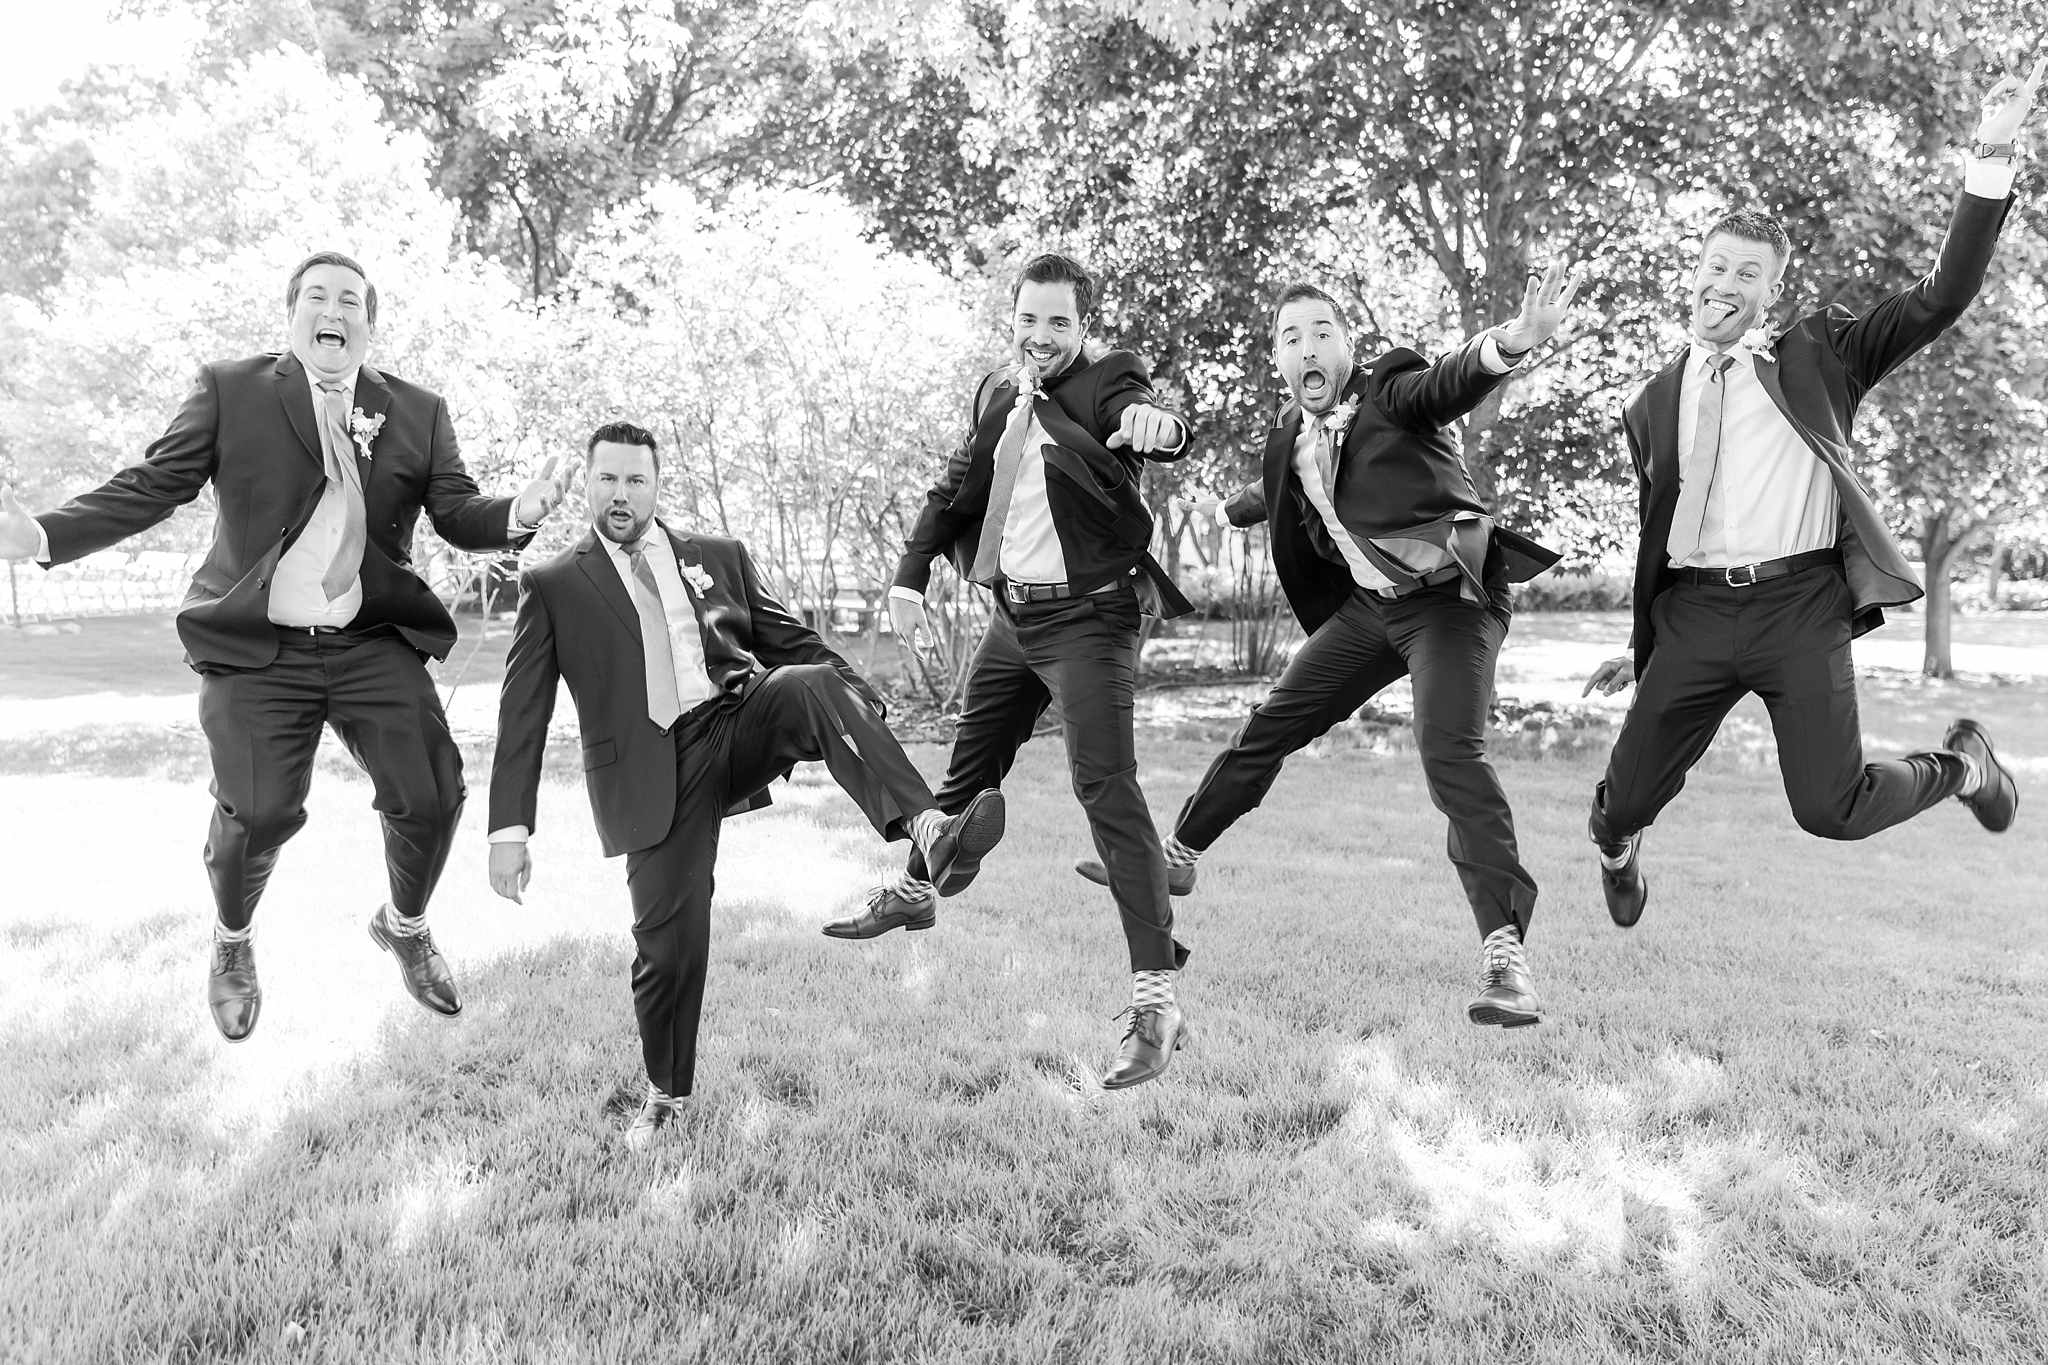 fun-candid-laid-back-wedding-photos-at-wellers-carriage-house-in-saline-michigan-and-at-the-eagle-crest-golf-resort-by-courtney-carolyn-photography_0036.jpg